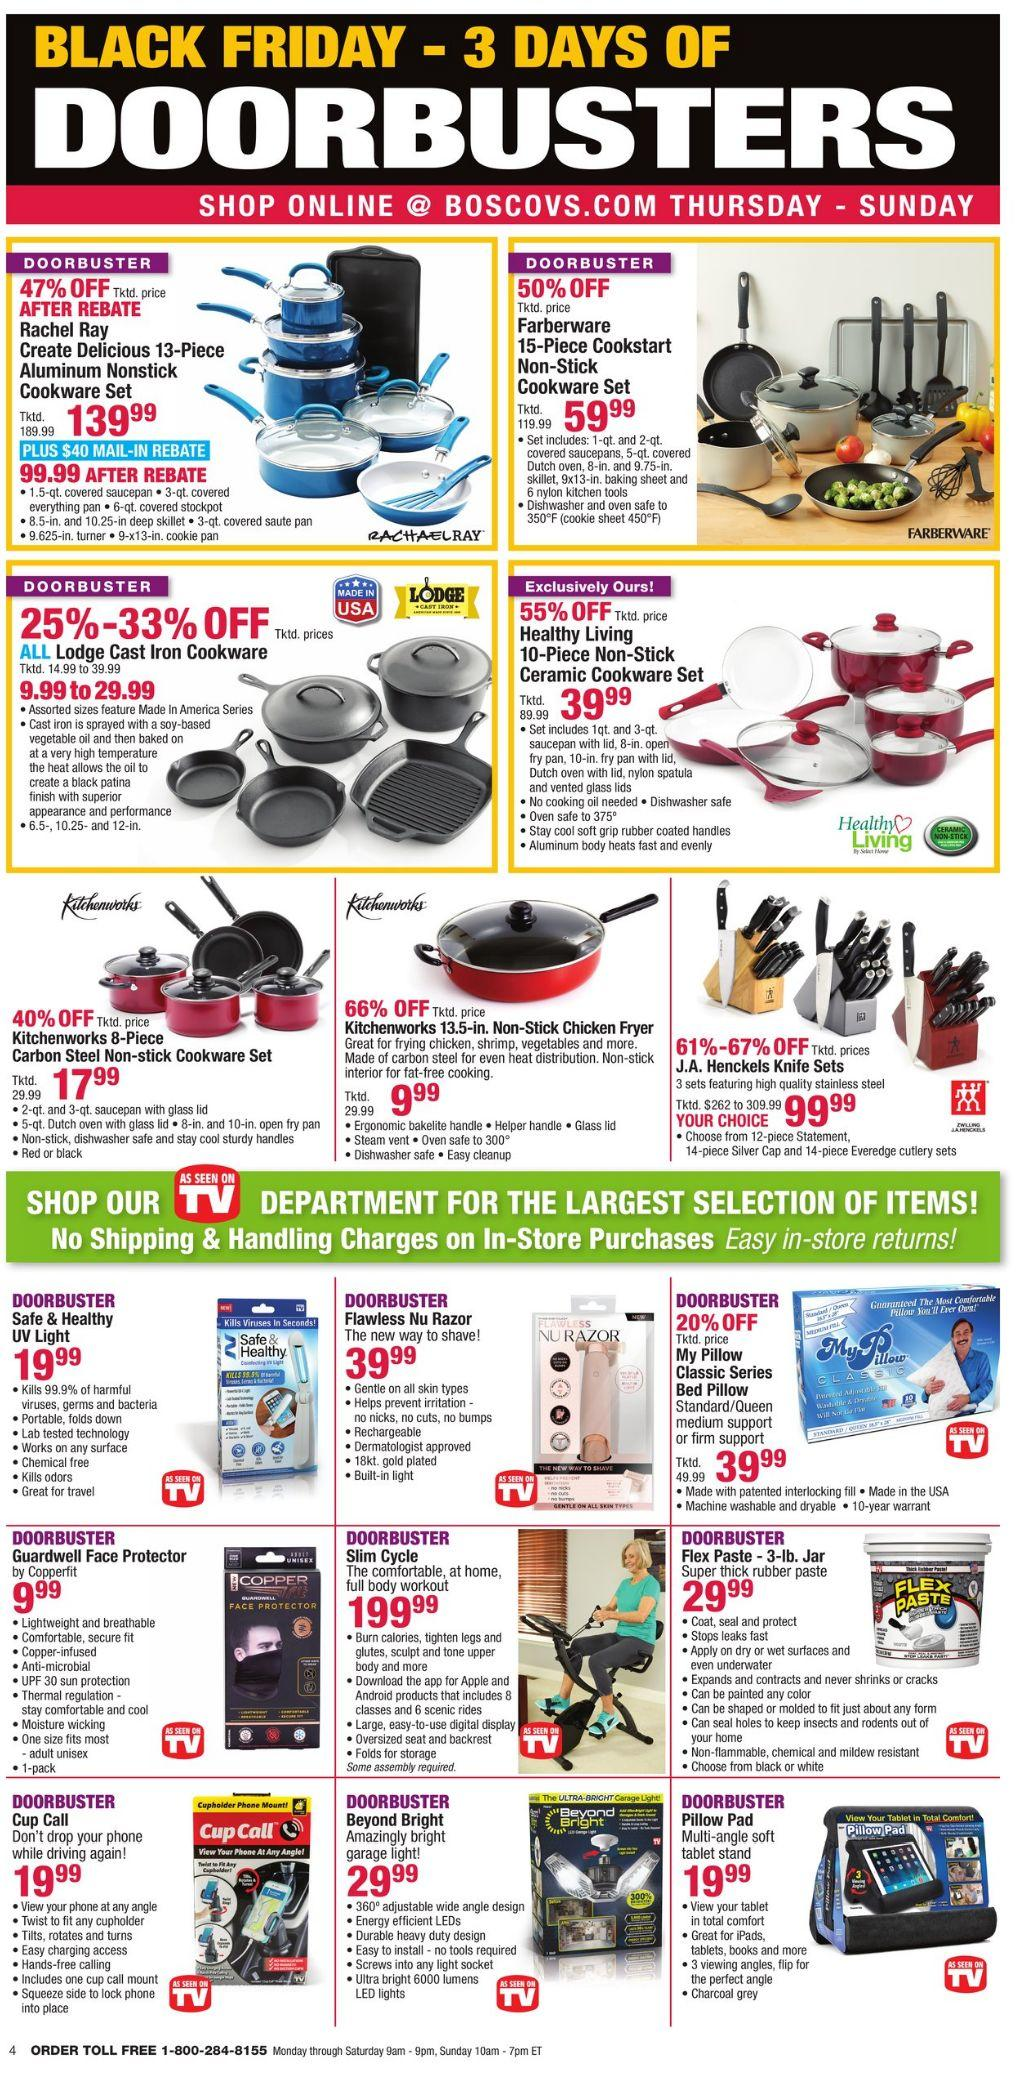 Boscov's Black Friday 2020 Page 4